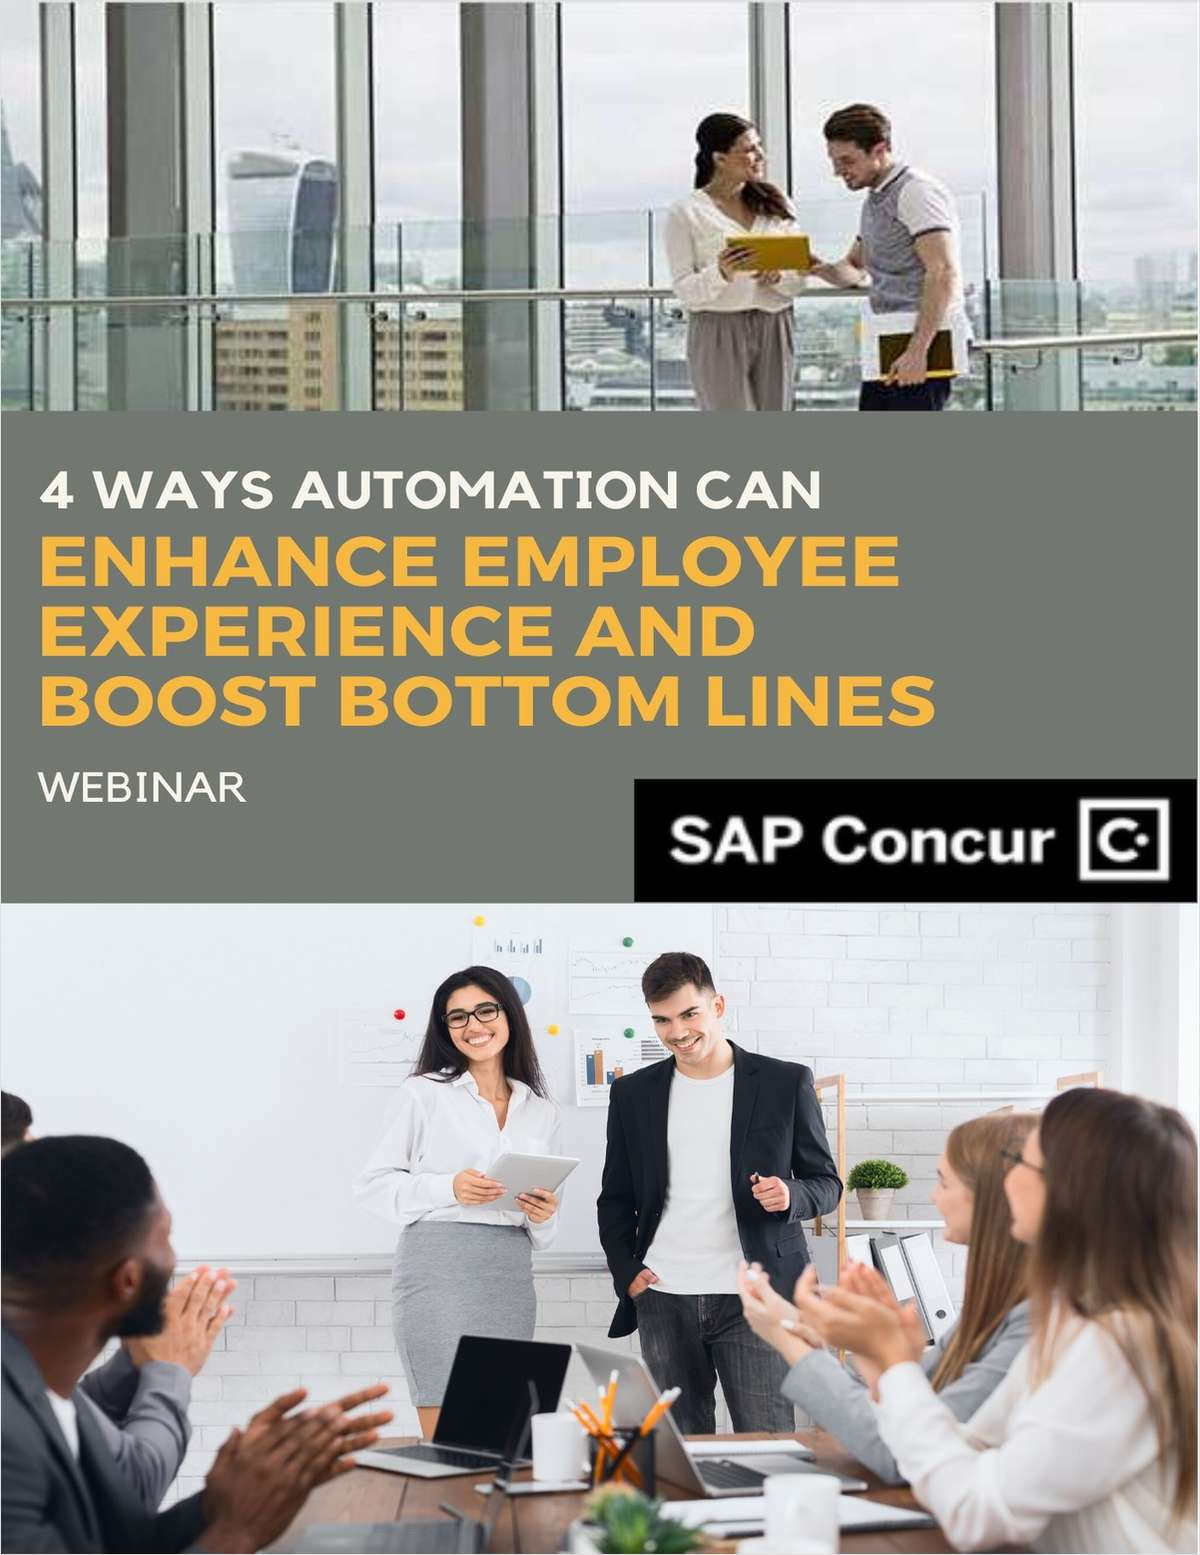 Webinar: 4 Ways Automation Can Enhance Employee Experience and Boost Bottom Lines